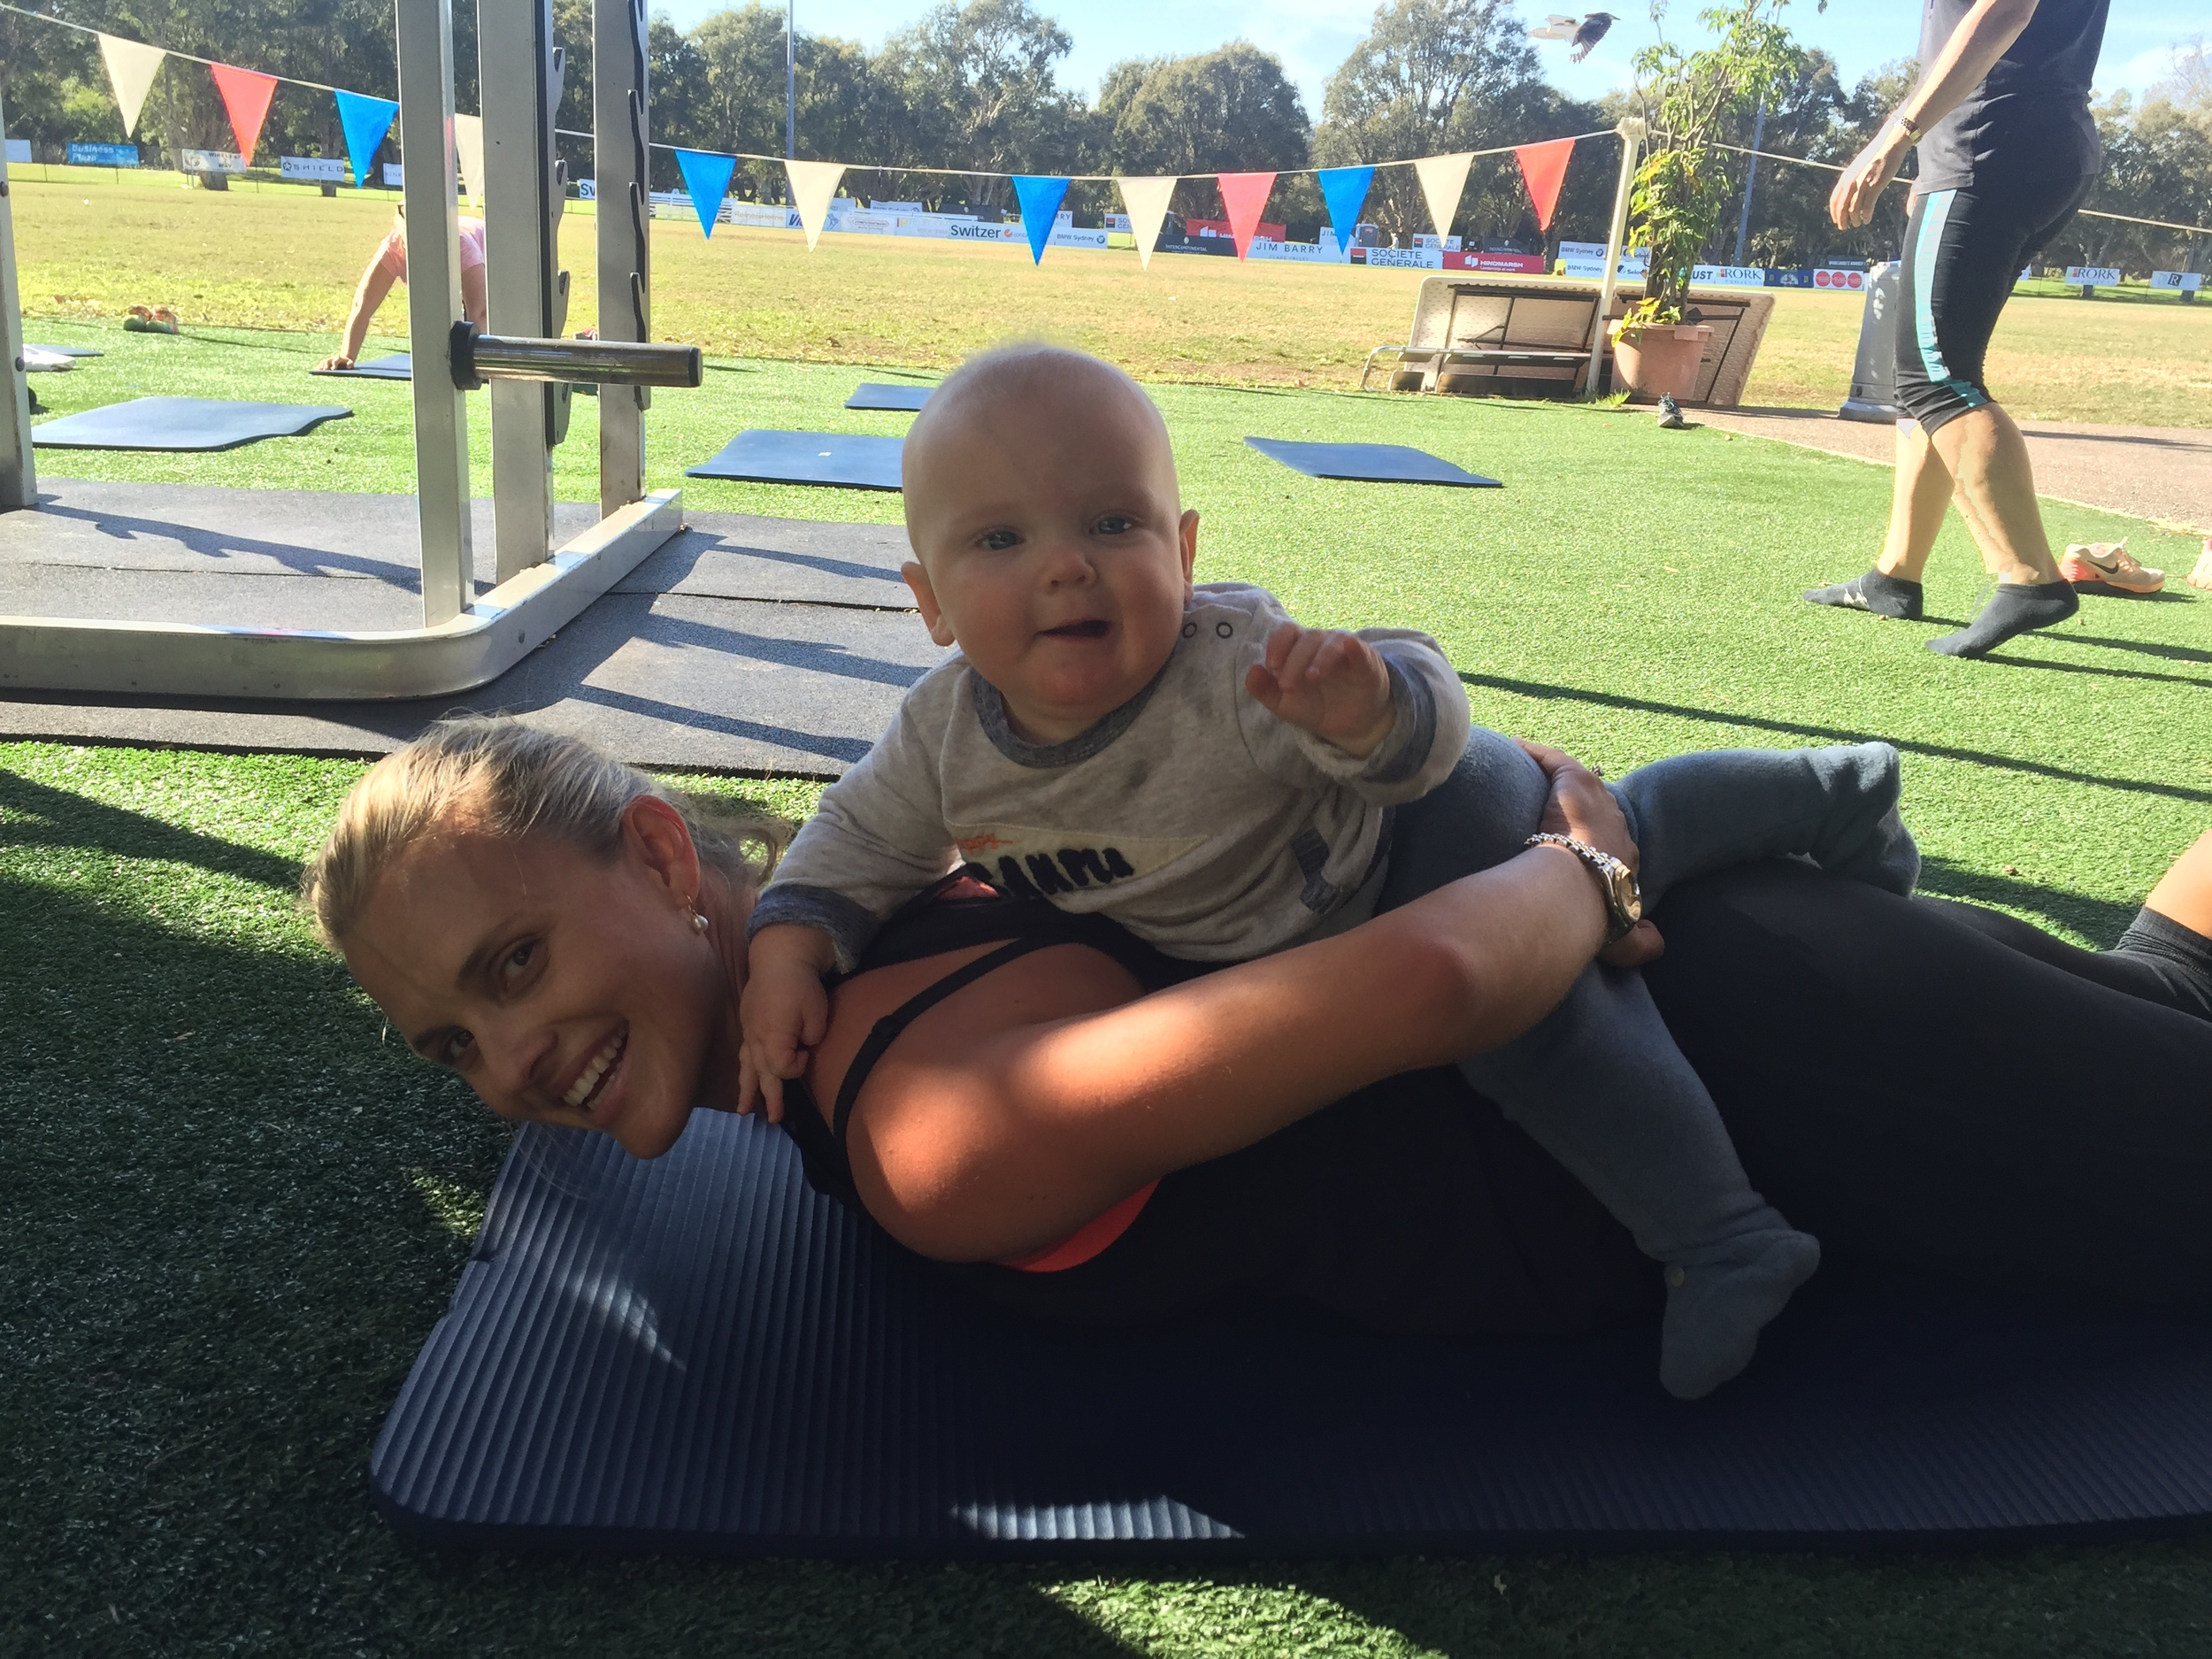 KP working on some push ups with little Freddy coming along for a ride.